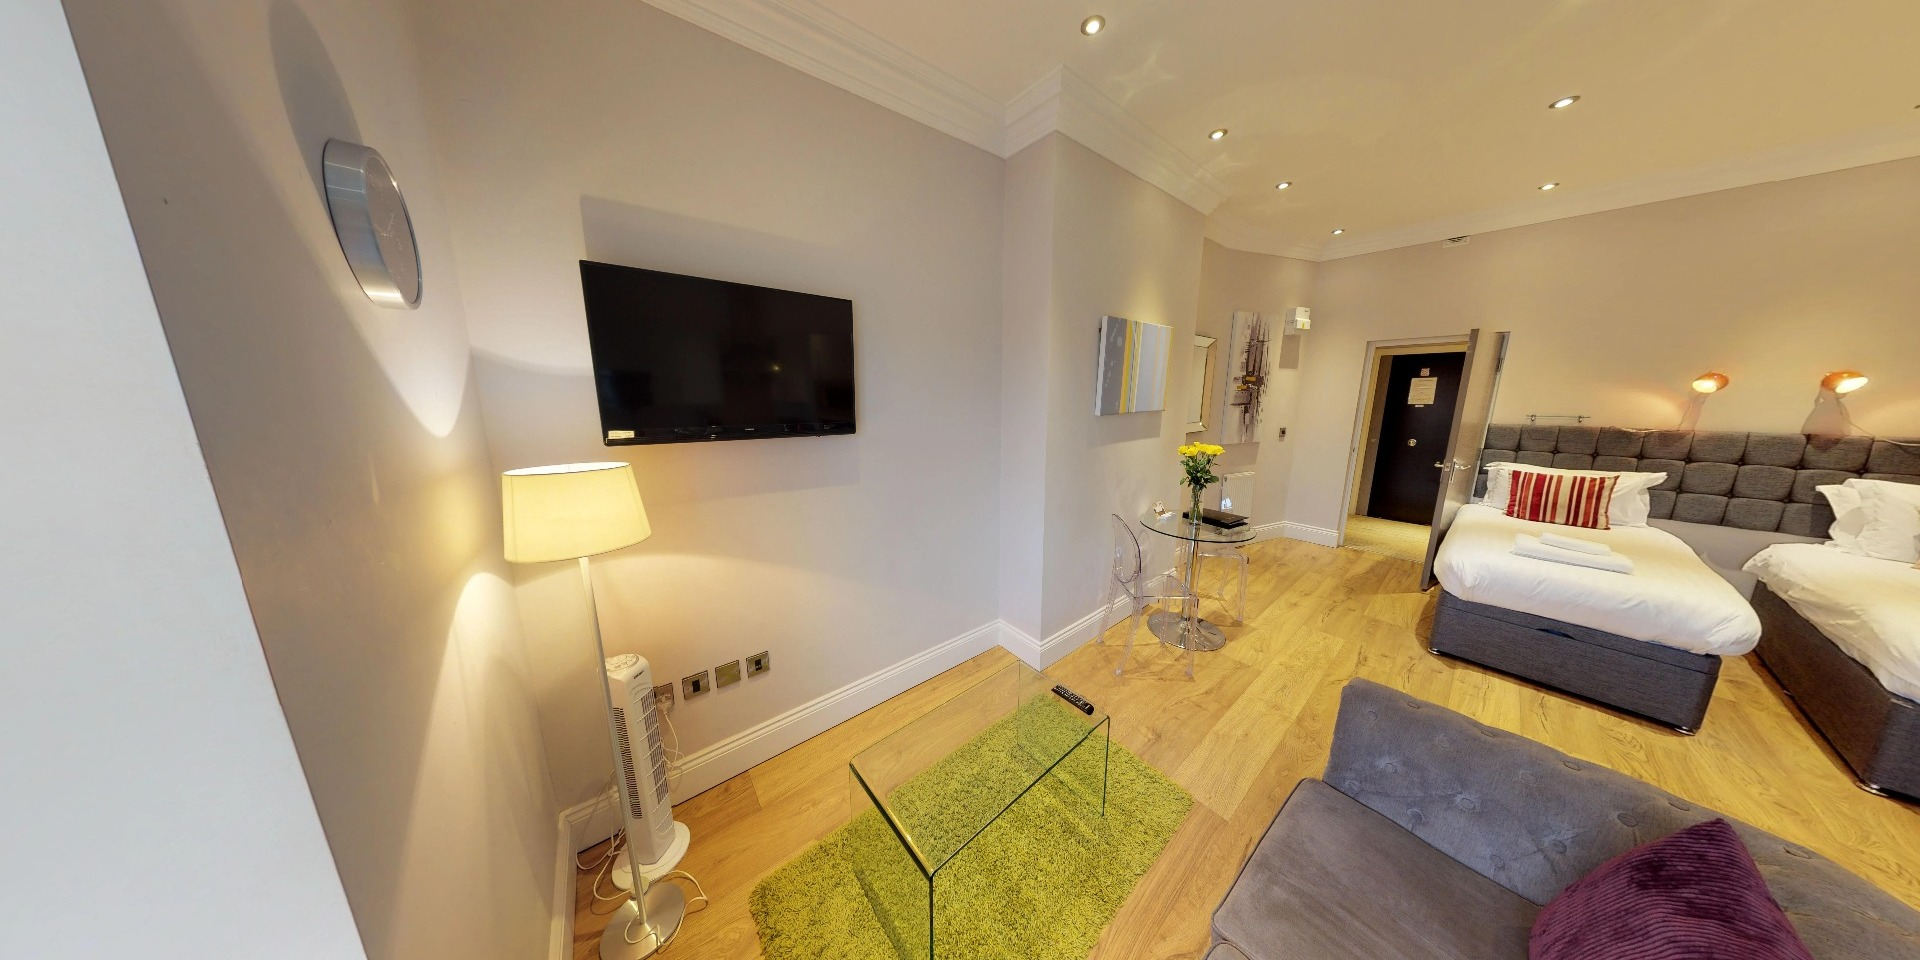 Self catering harrogate